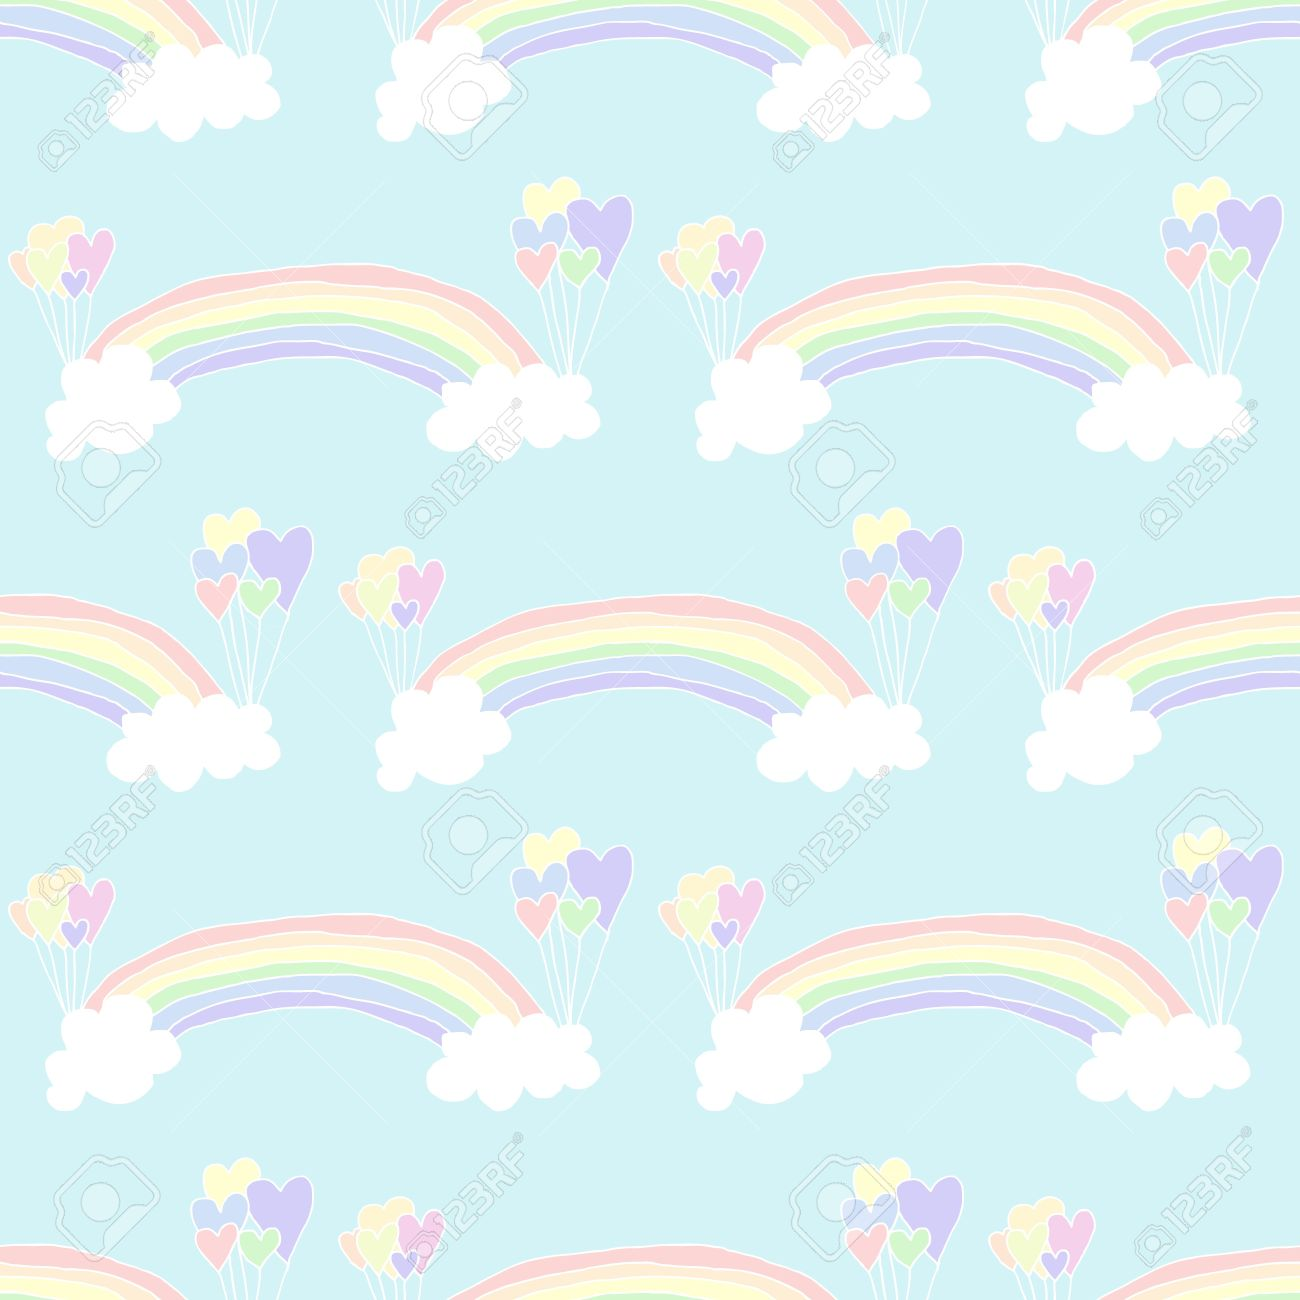 Pastel rainbow clipart picture transparent stock Illustration Of Hand Drawn Seamless Pastel Rainbow Background ... picture transparent stock